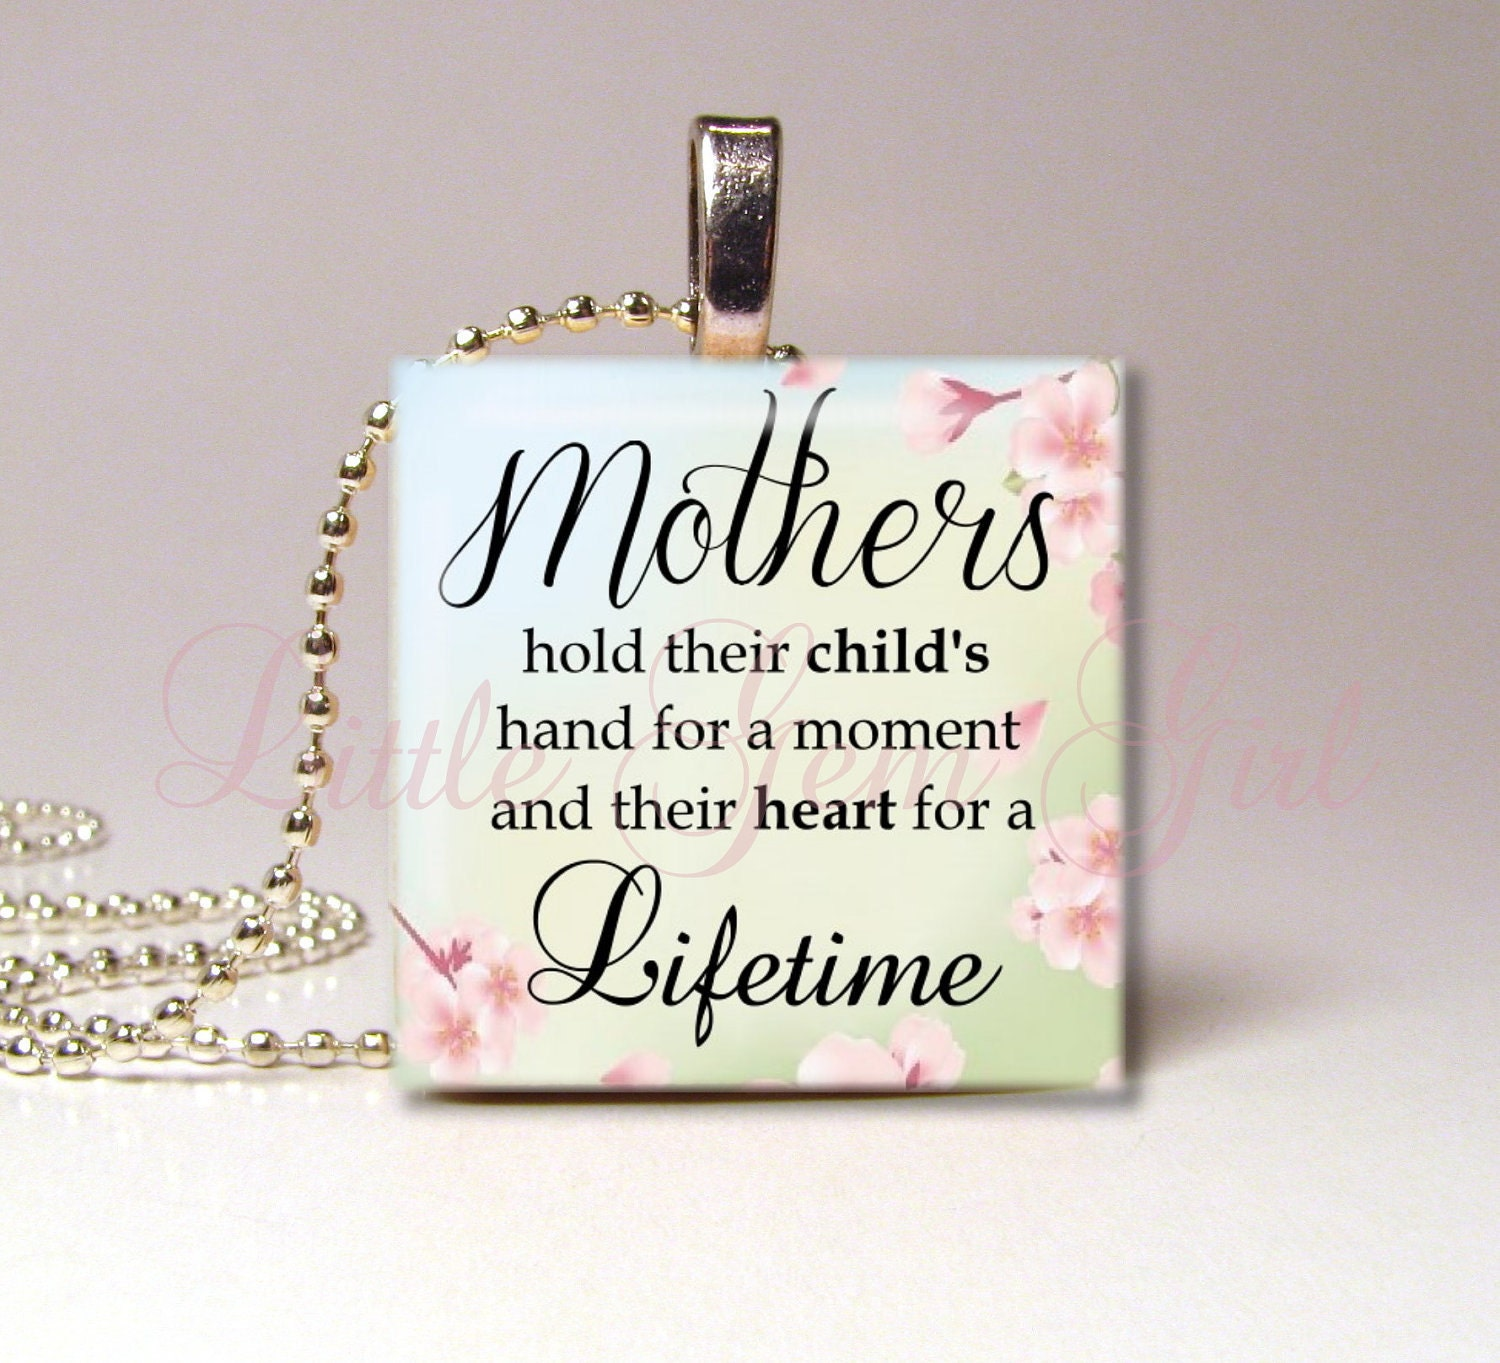 Poems For Grandma For Mothers Day Mother s Day Hand Poem